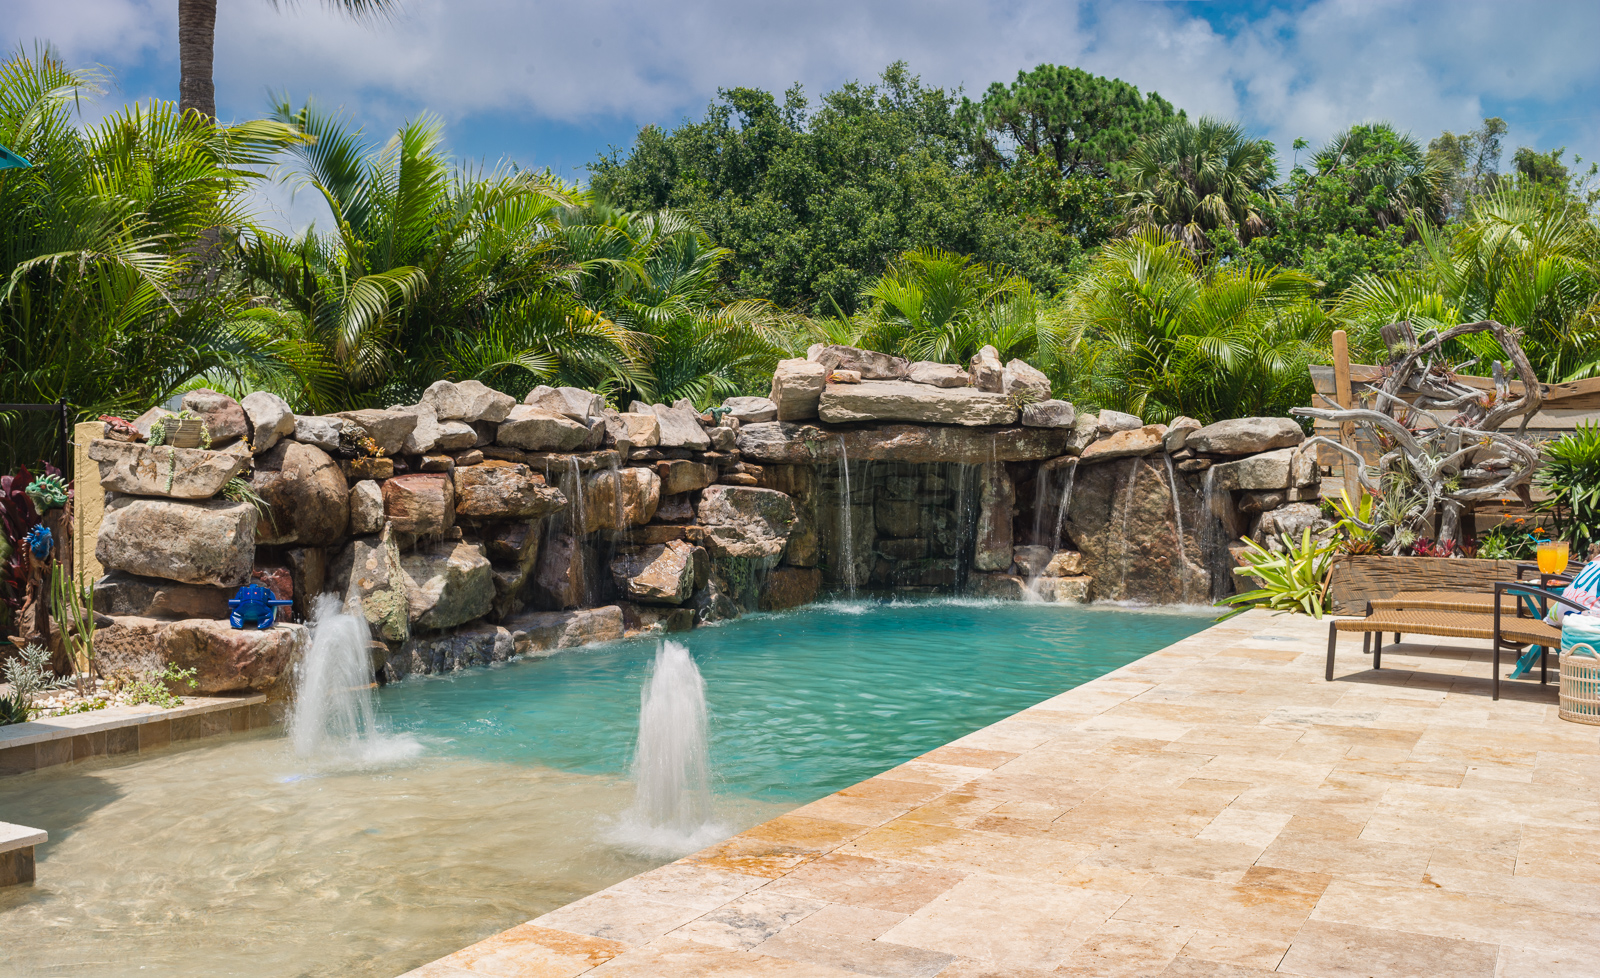 Insane pools tv episode small yard big dreams - What do dreams about swimming pools mean ...